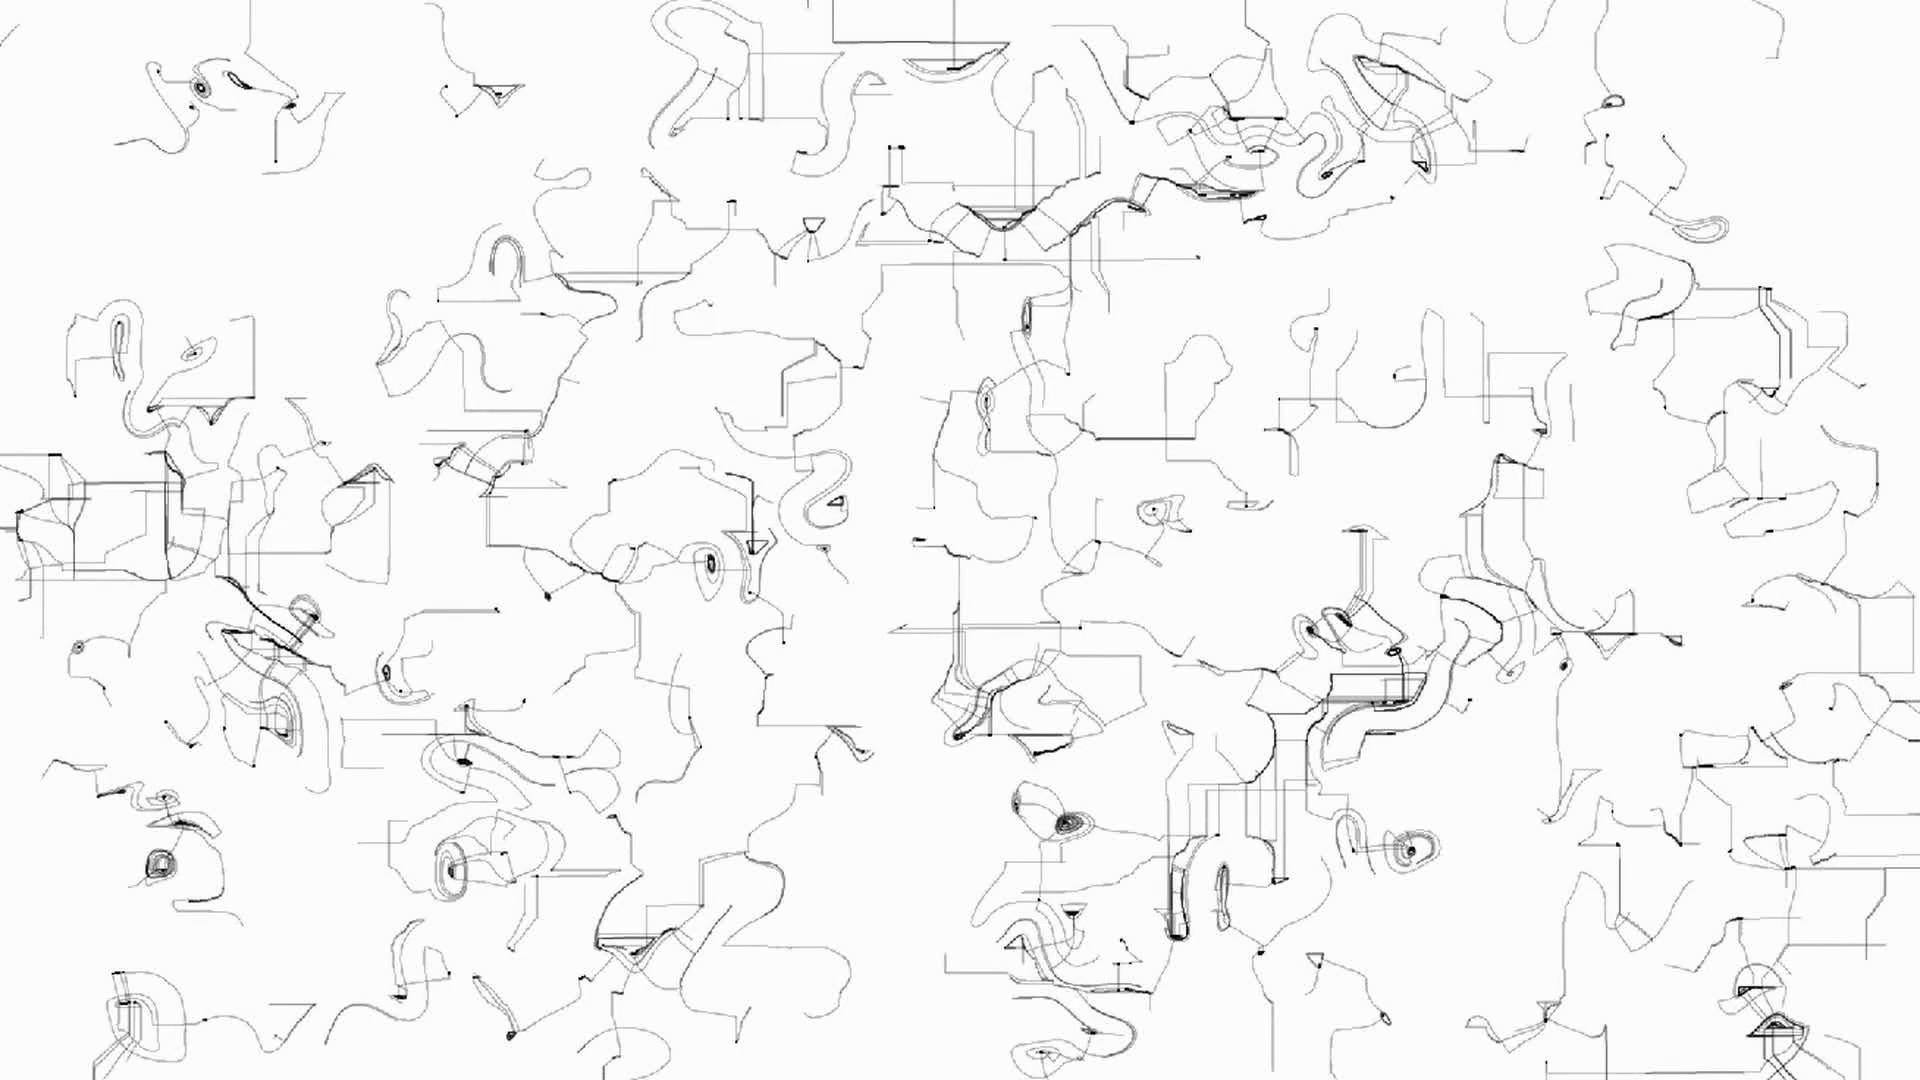 1920x1080 Hand Drawn Black Doodles On White Paper. Abstract Animated